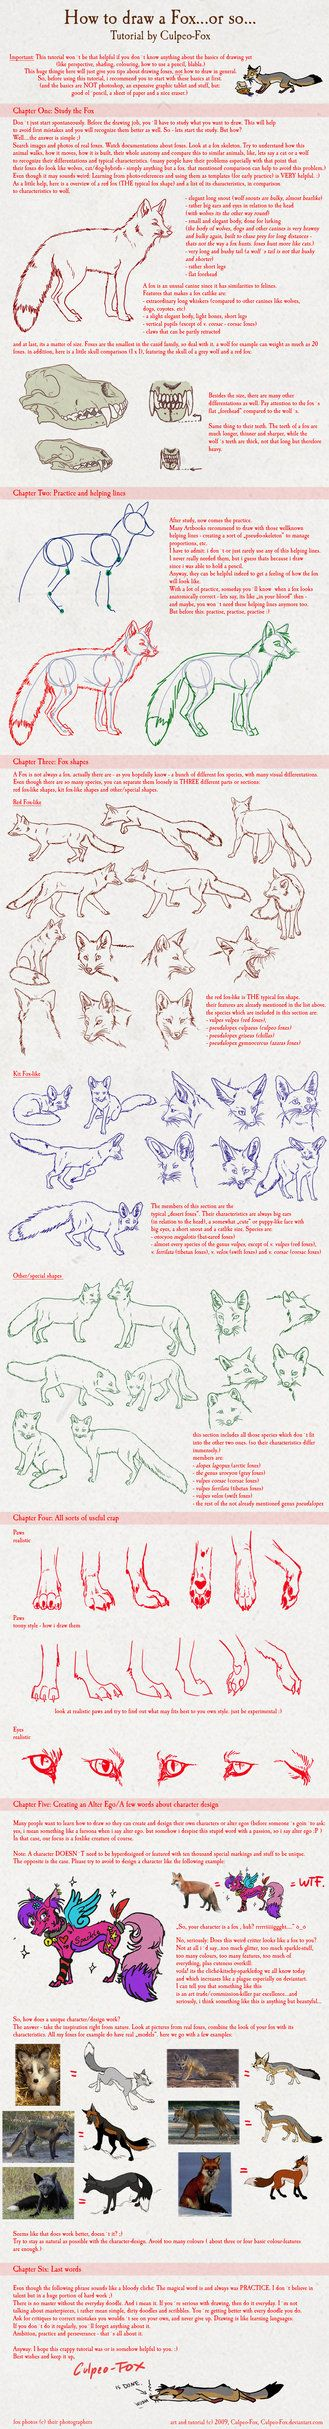 Fox drawing tutorial by Culpeo-Fox via deviantart ✤ || CHARACTER DESIGN REFERENCES | Find more at https://www.facebook.com/CharacterDesignReferences  http://www.pinterest.com/characterdesigh if you're looking for: anatomy, animals